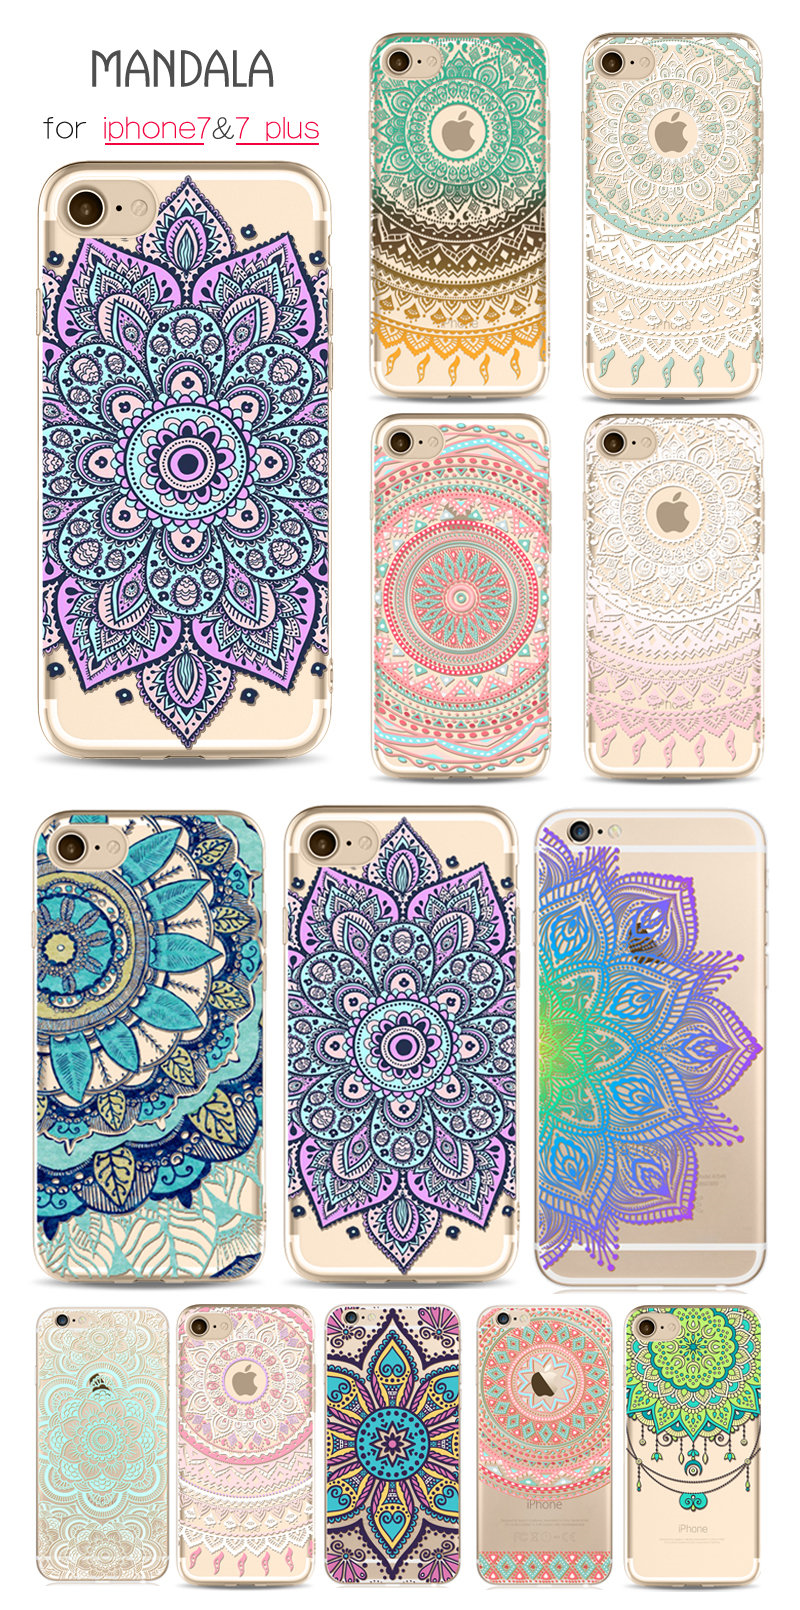 Mandala soft tpu phone cases for iphone 7 plus 6 6s 5 for Design a case